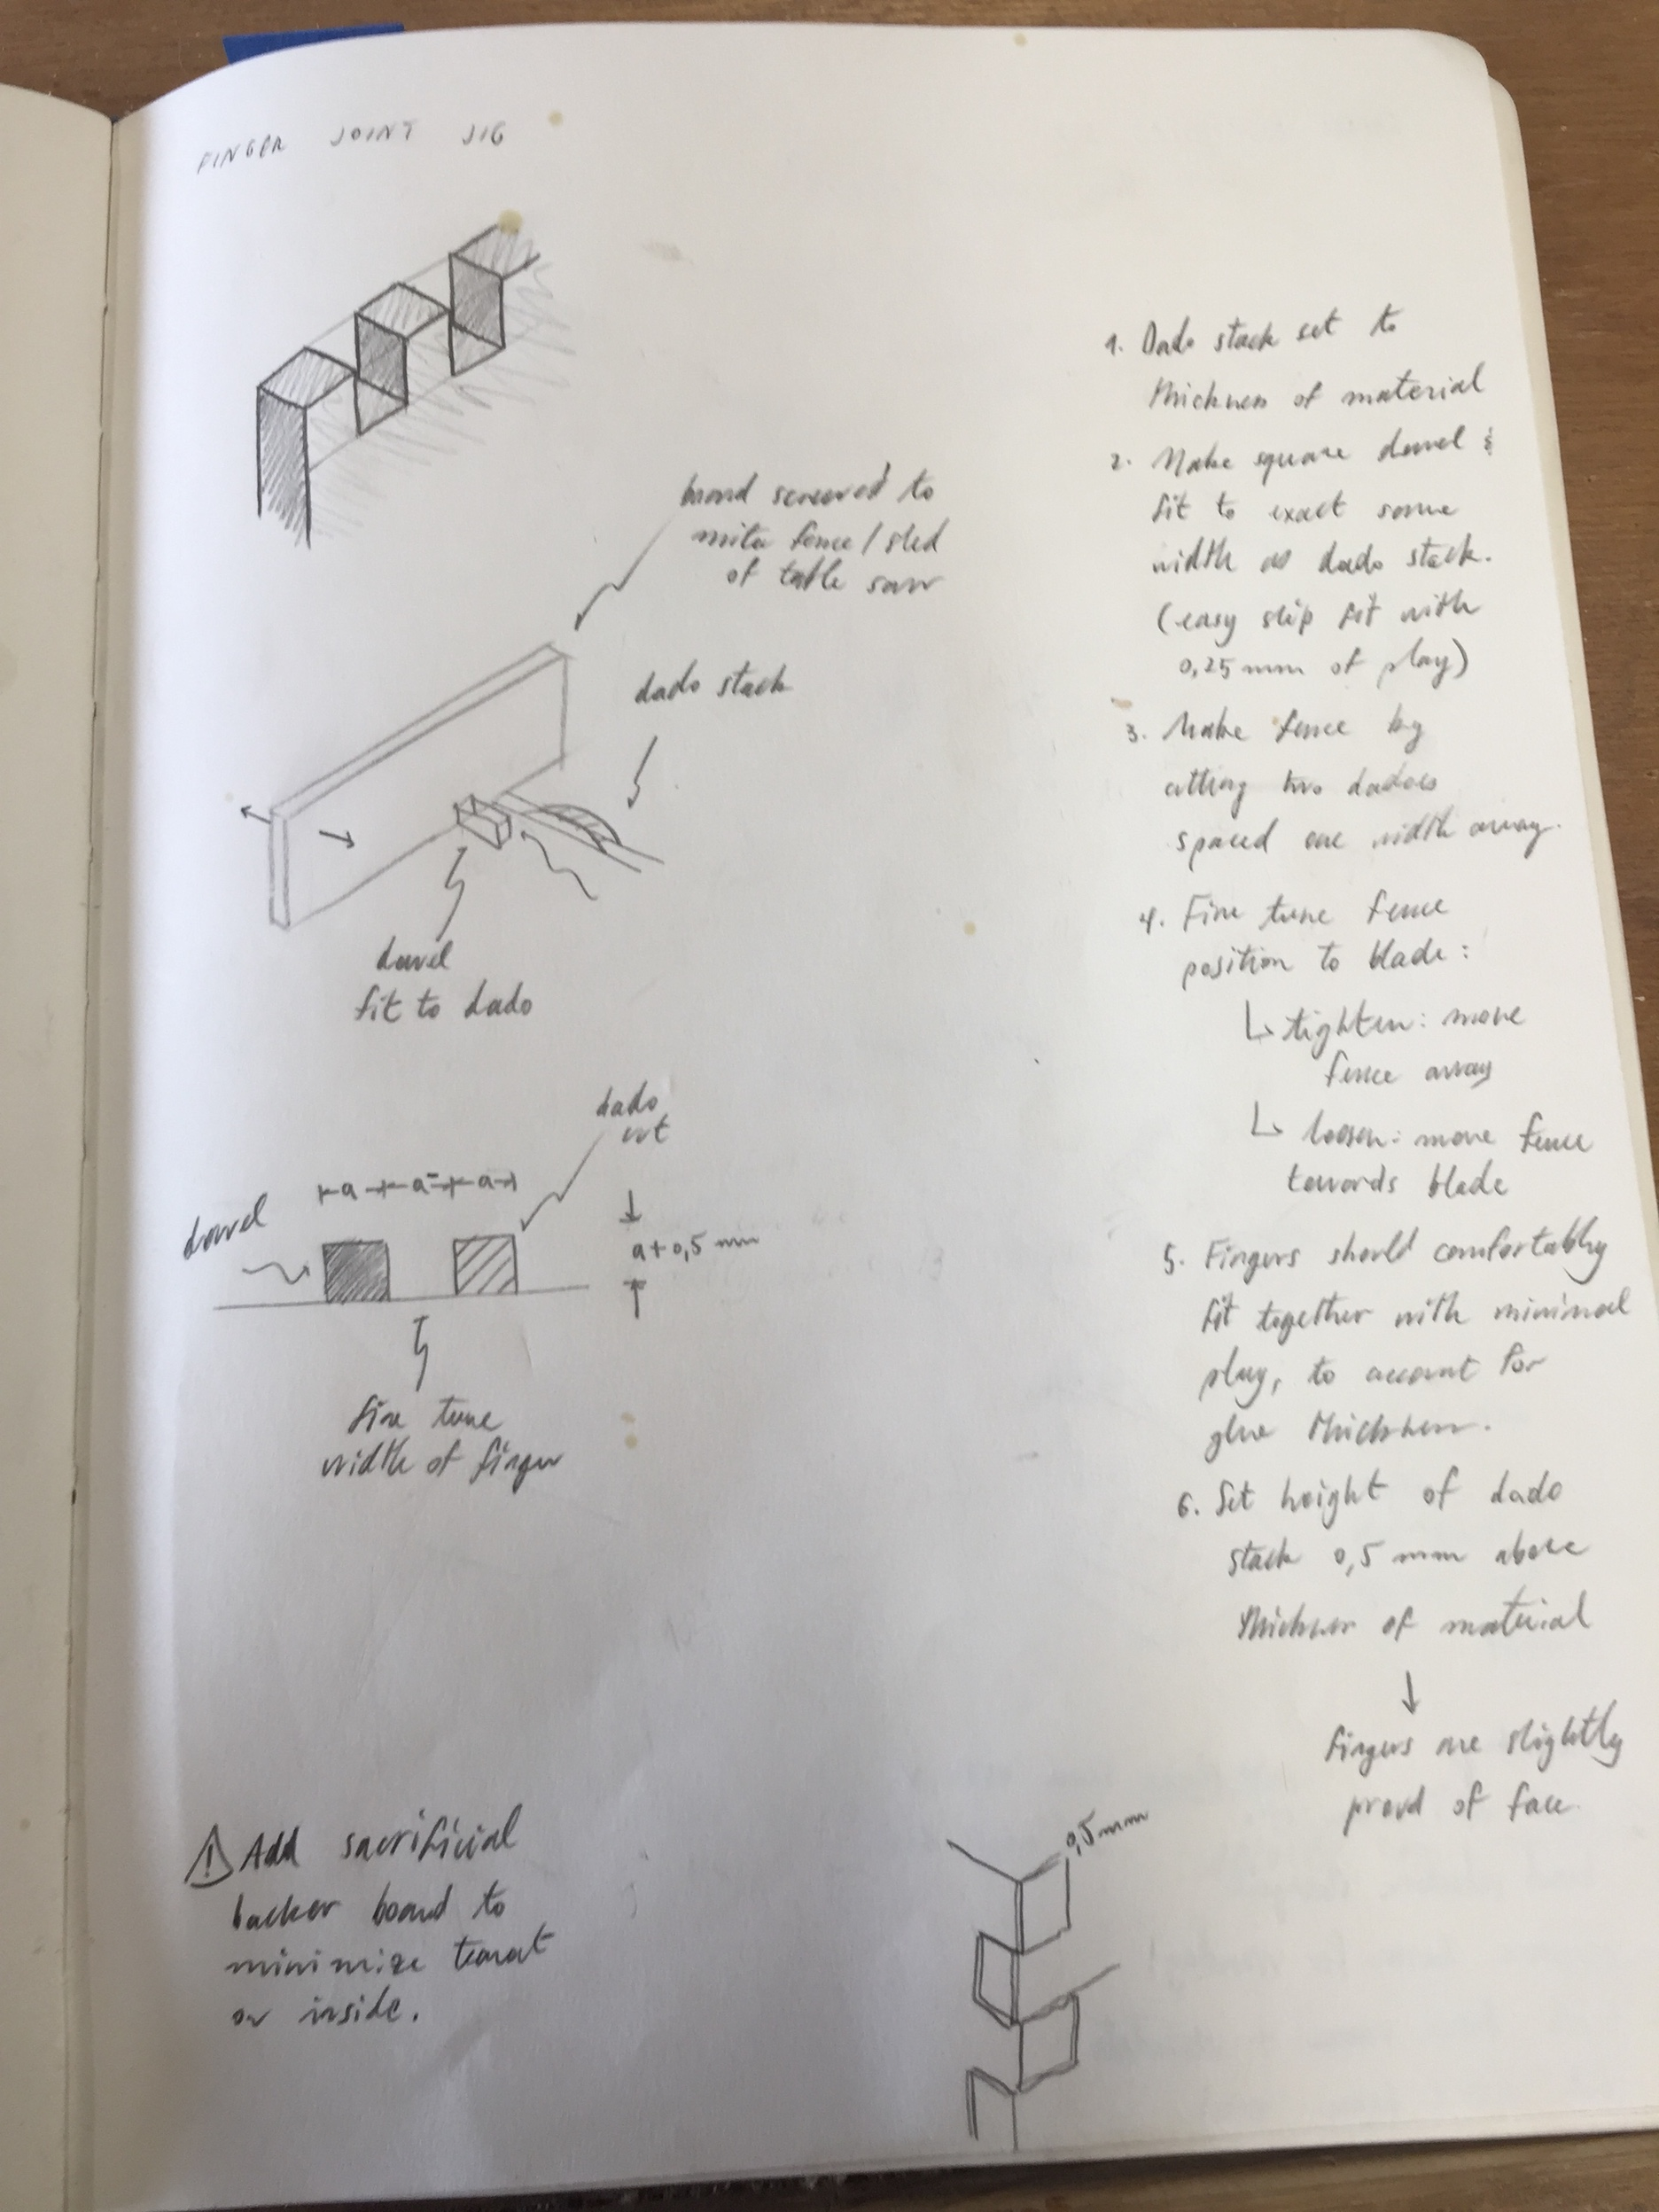 Notes on making a finger jointing jig for Owen's toolbox